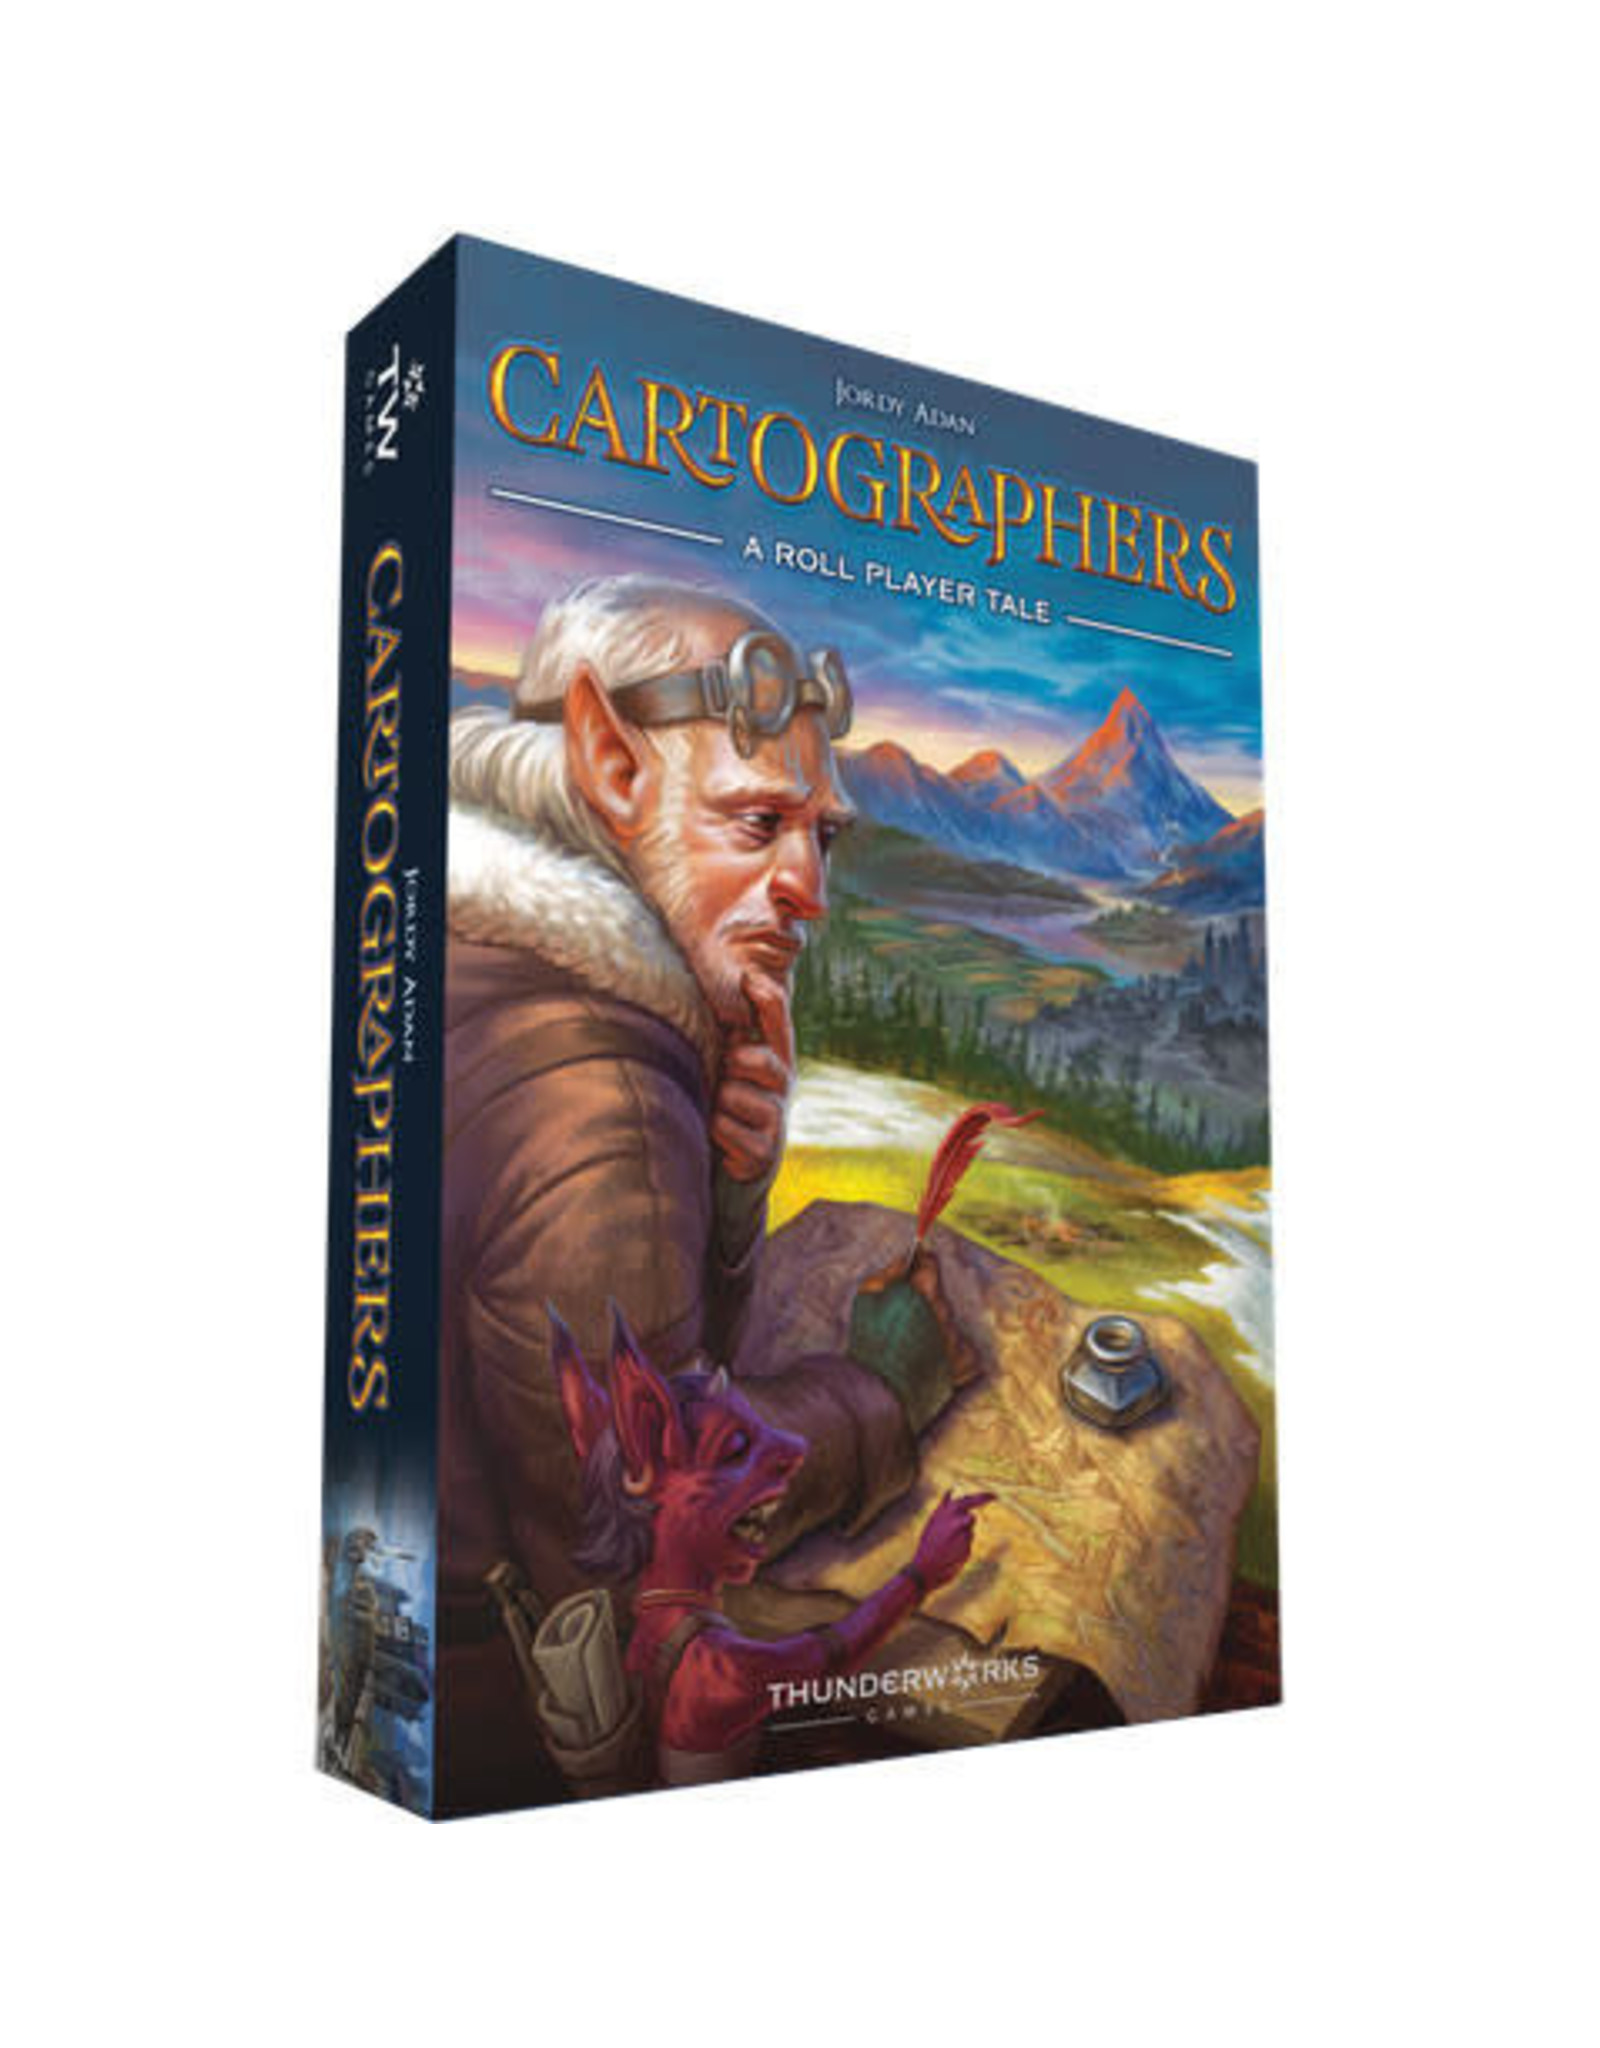 Cartographers: A Roll Player Tale Board Game